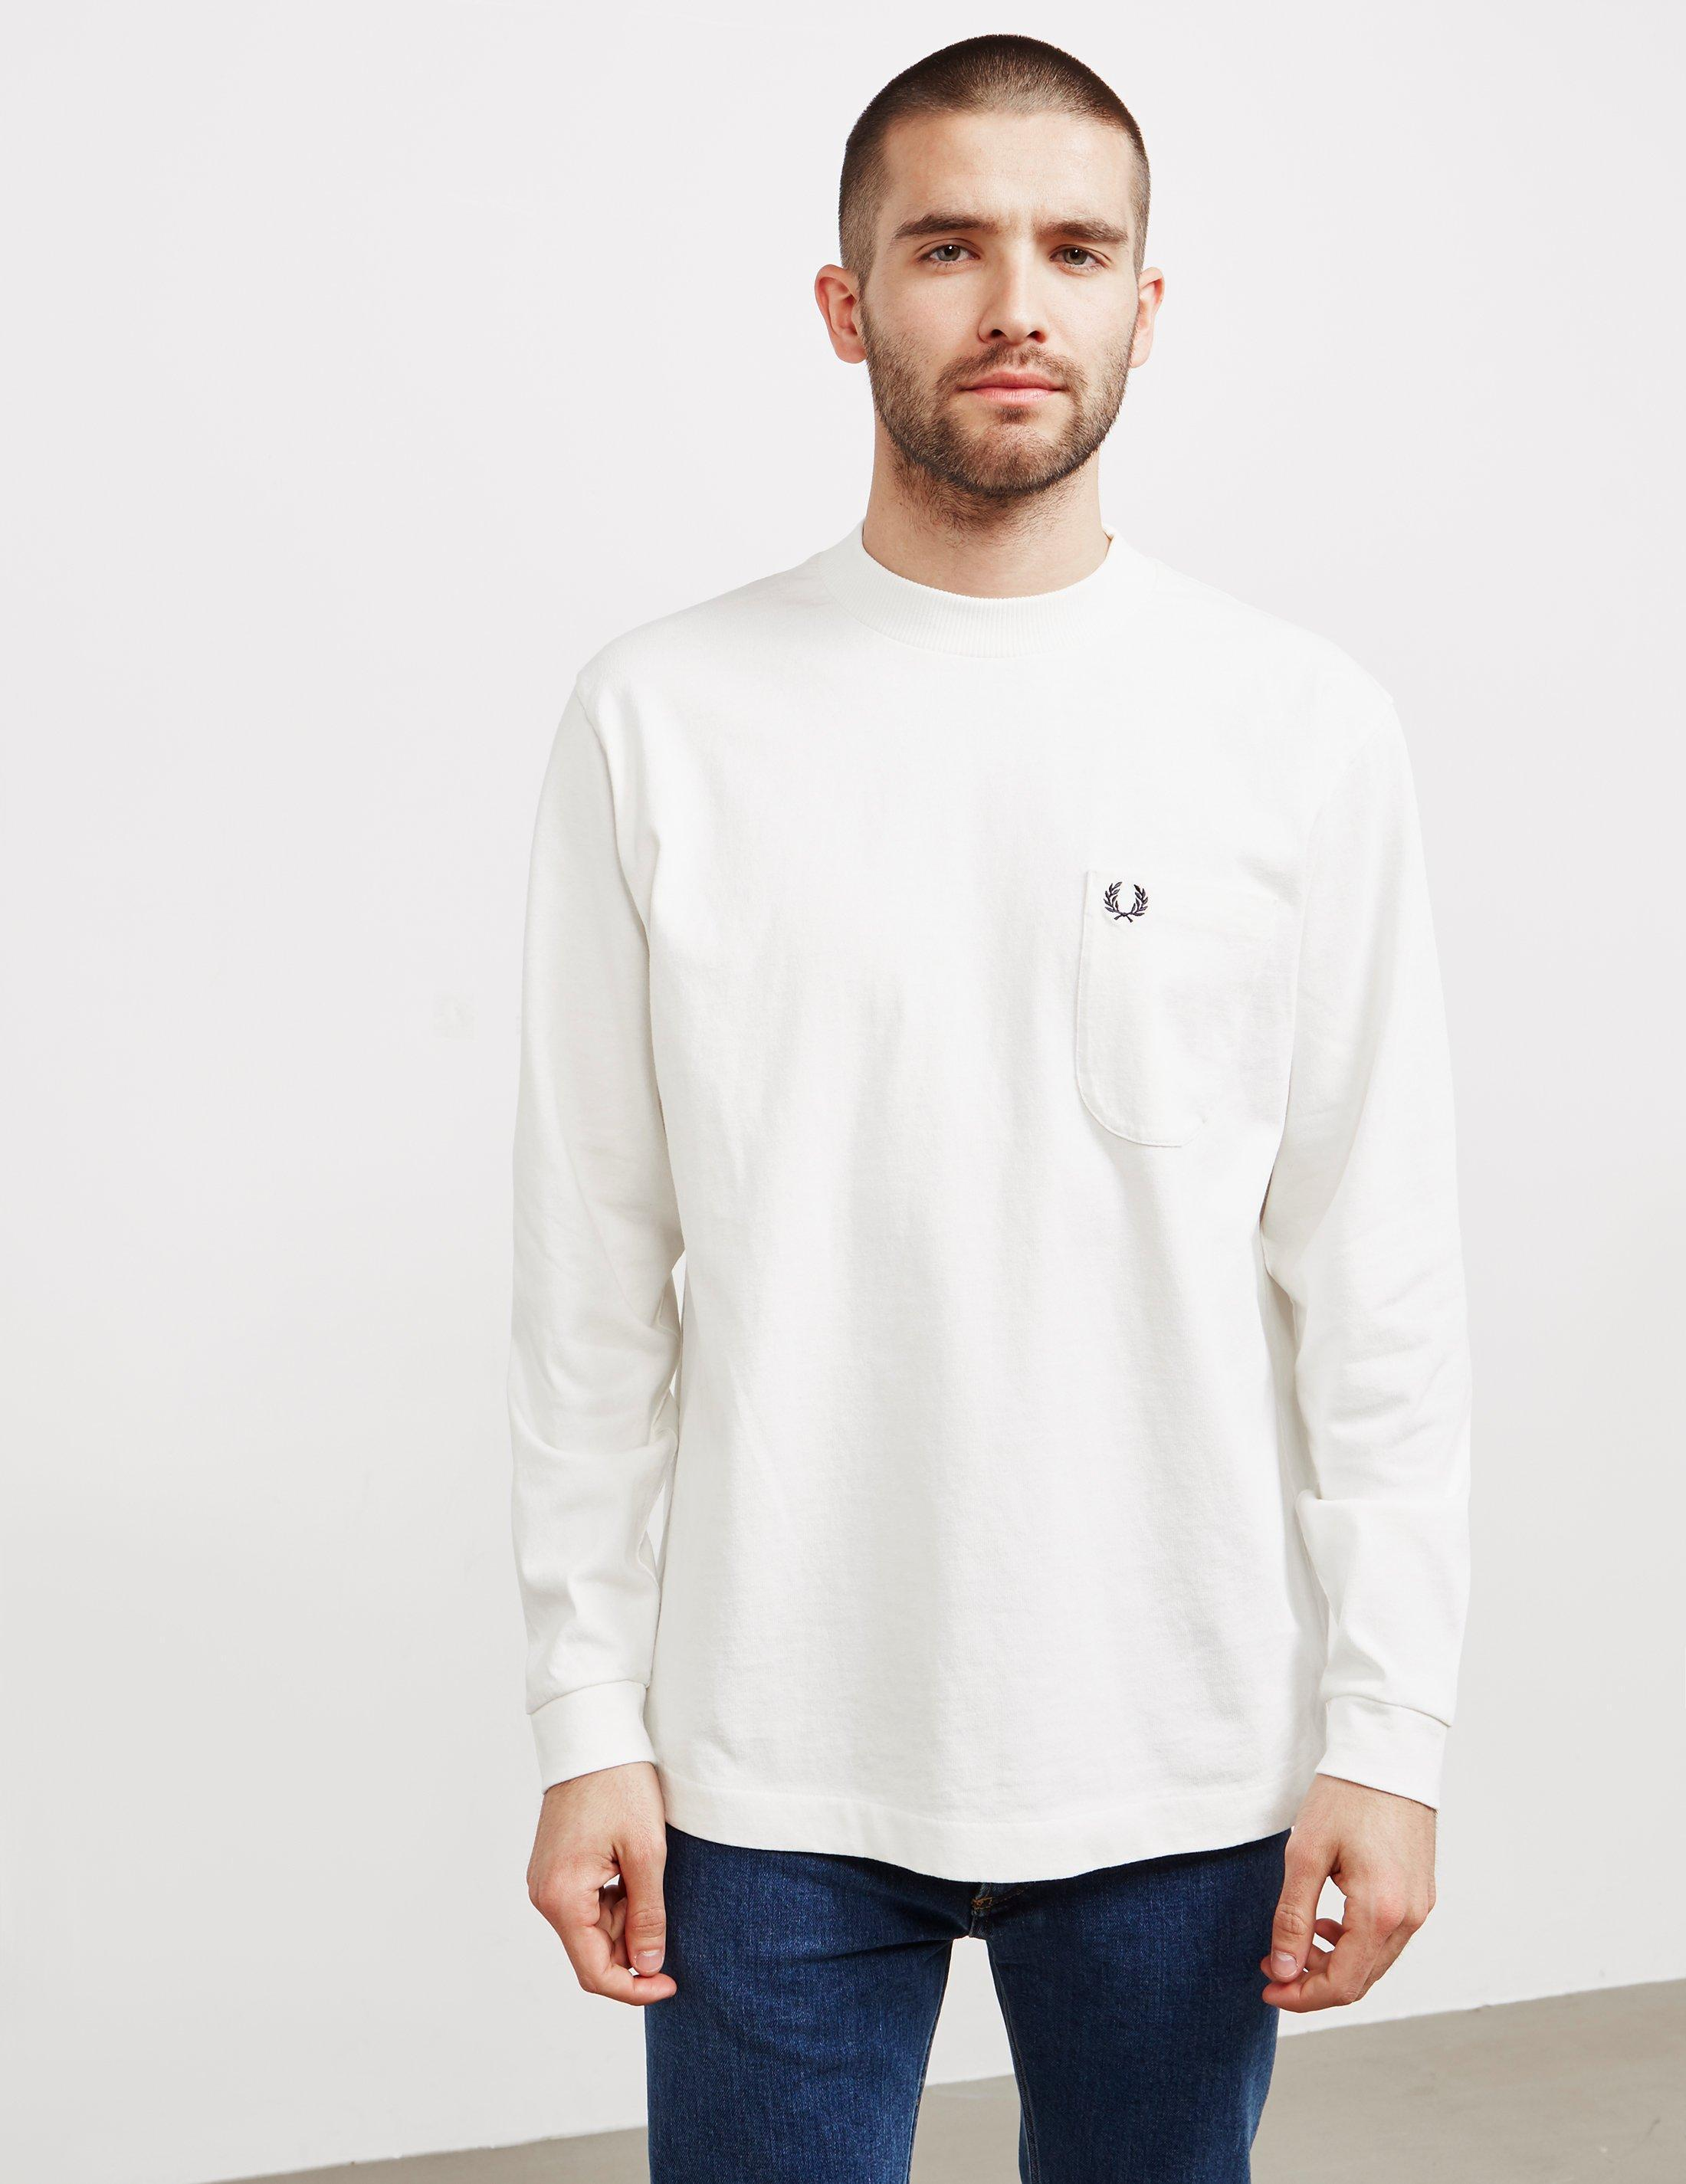 Fred Perry High Neck Long Sleeve T-shirt White for Men - Lyst